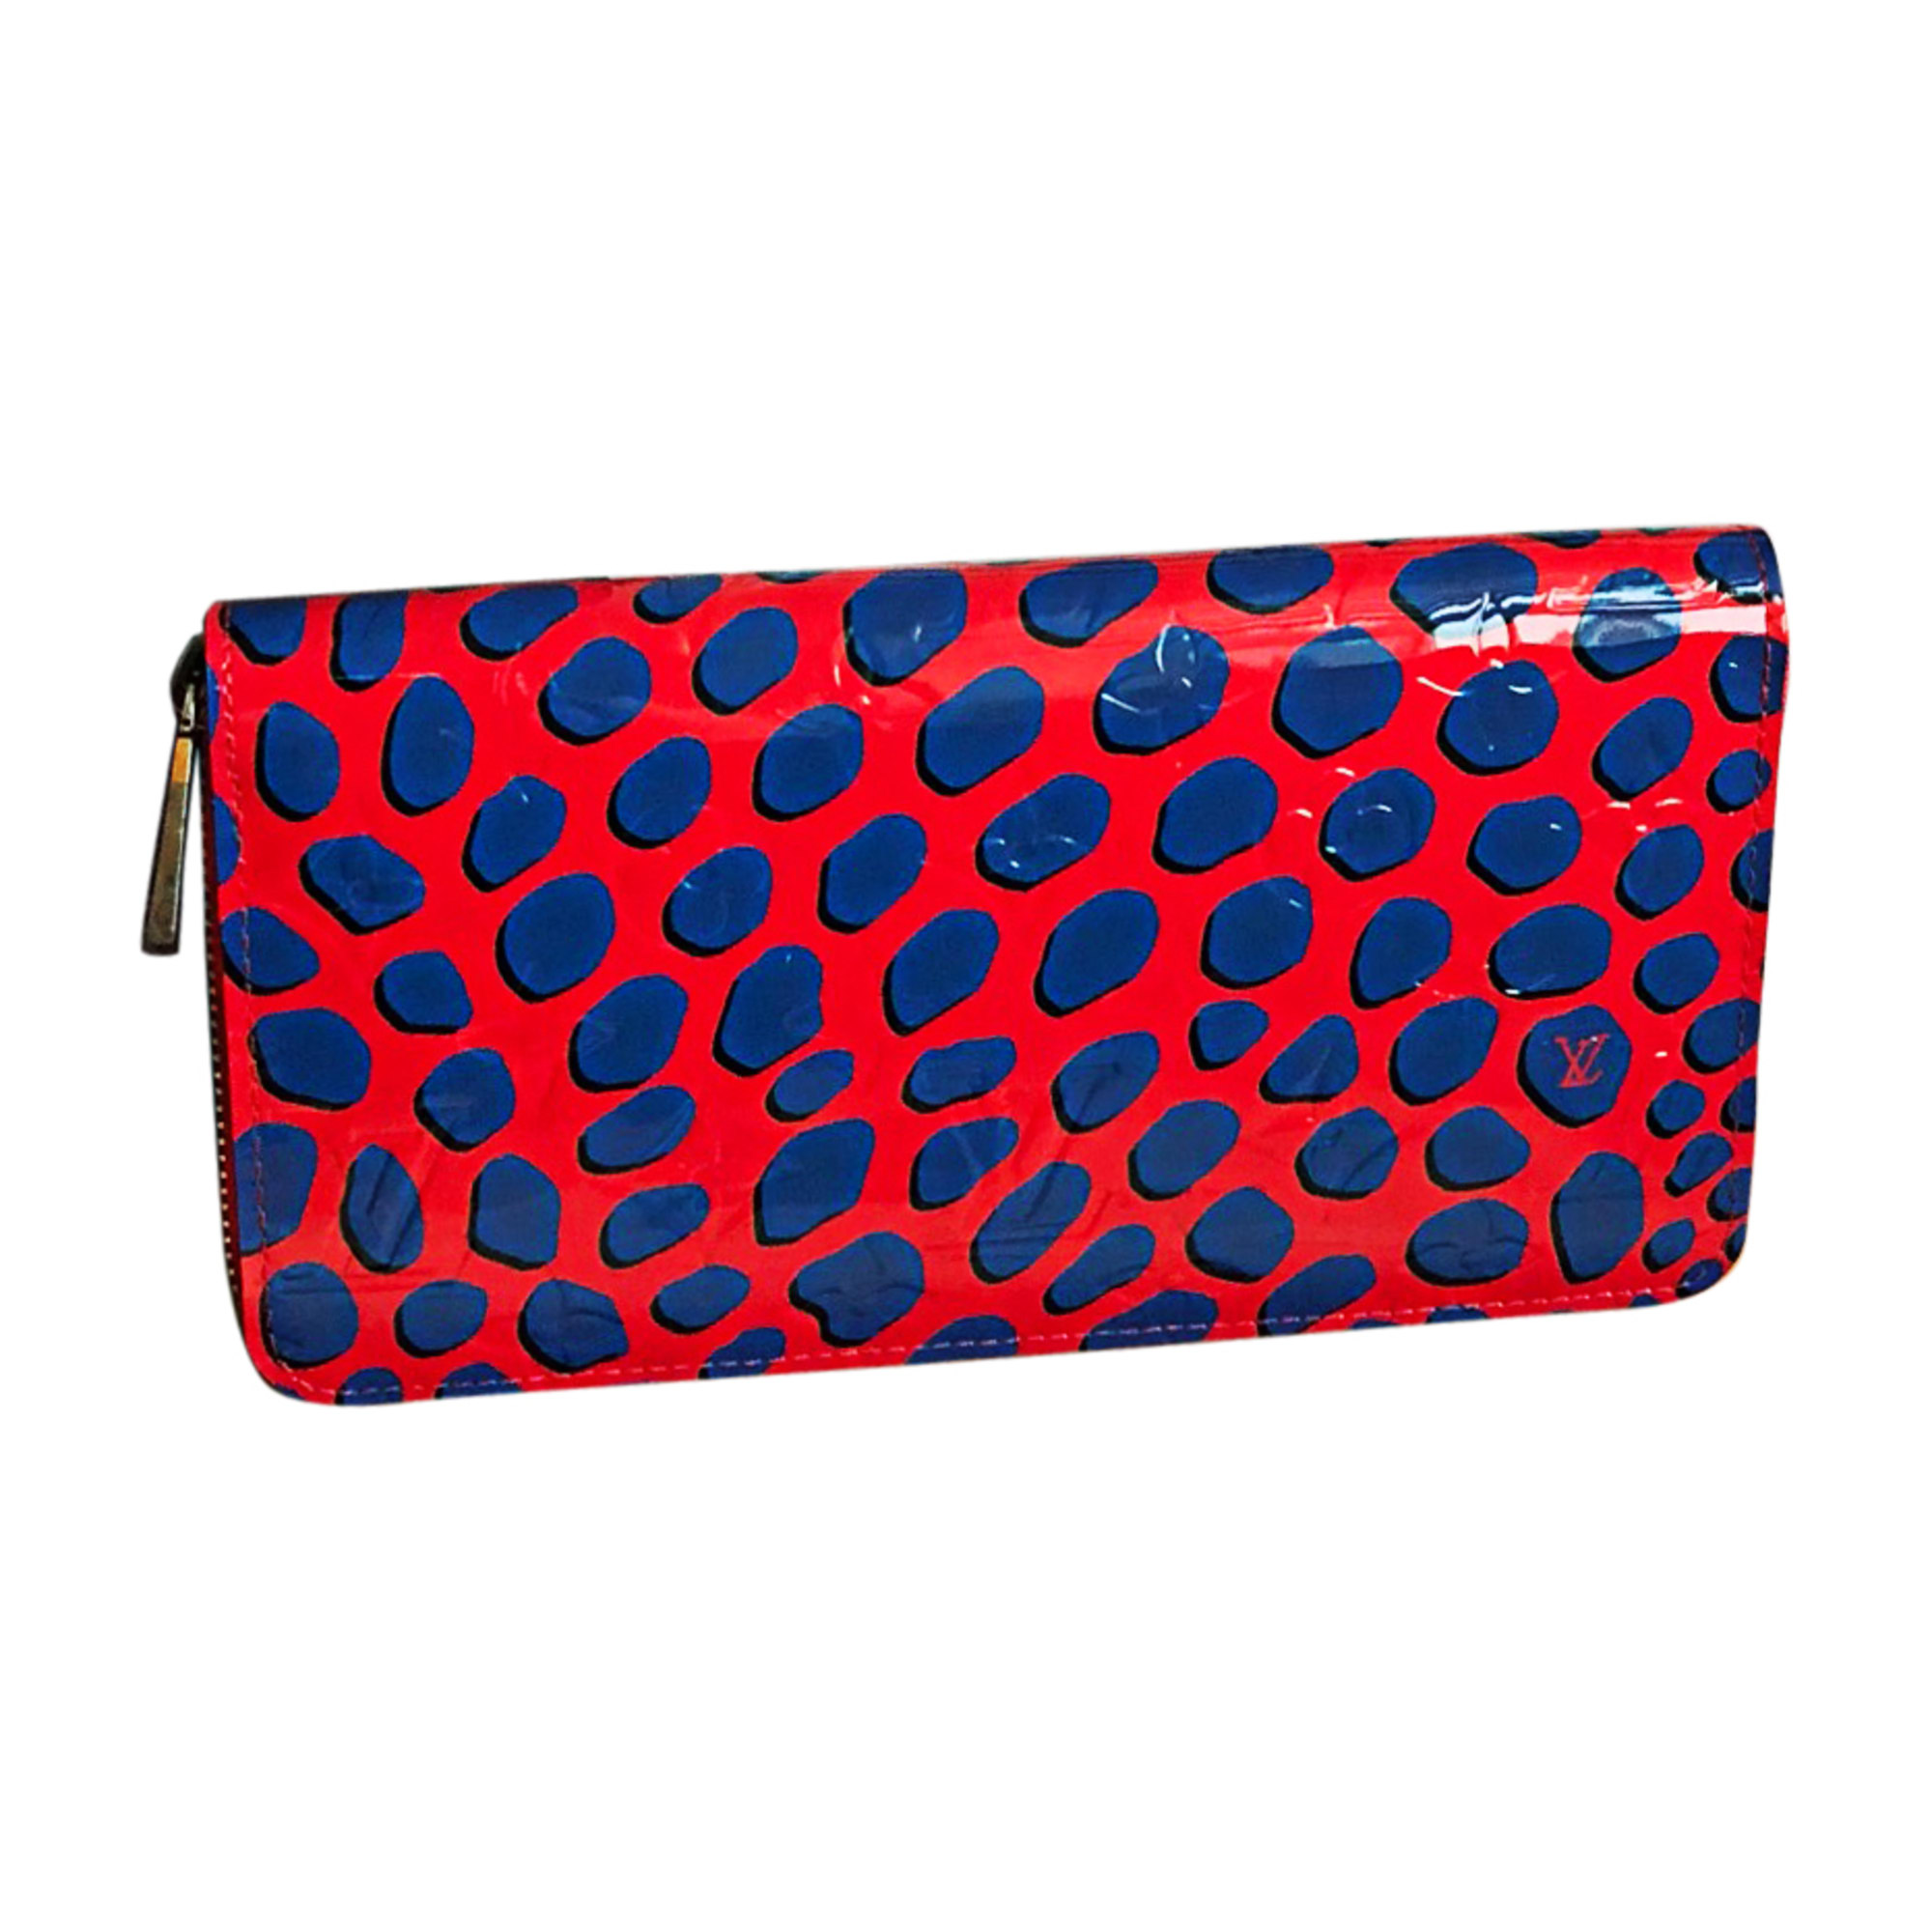 Portefeuille LOUIS VUITTON rouge - 8191988 4515645a1ac